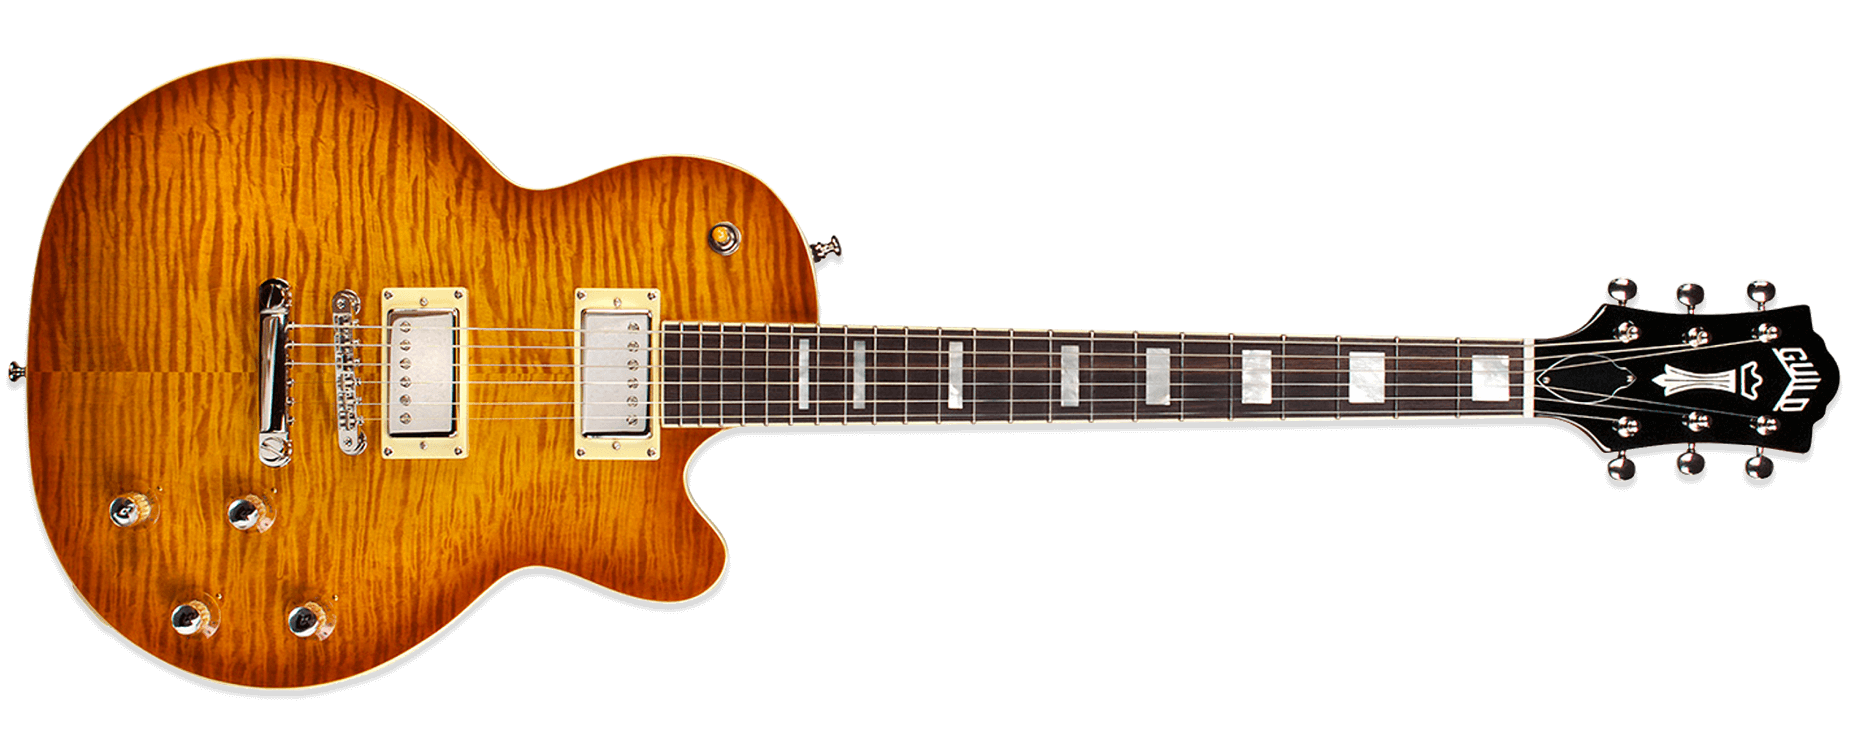 Guild Newark St Bluesbird Iced Tea Burst